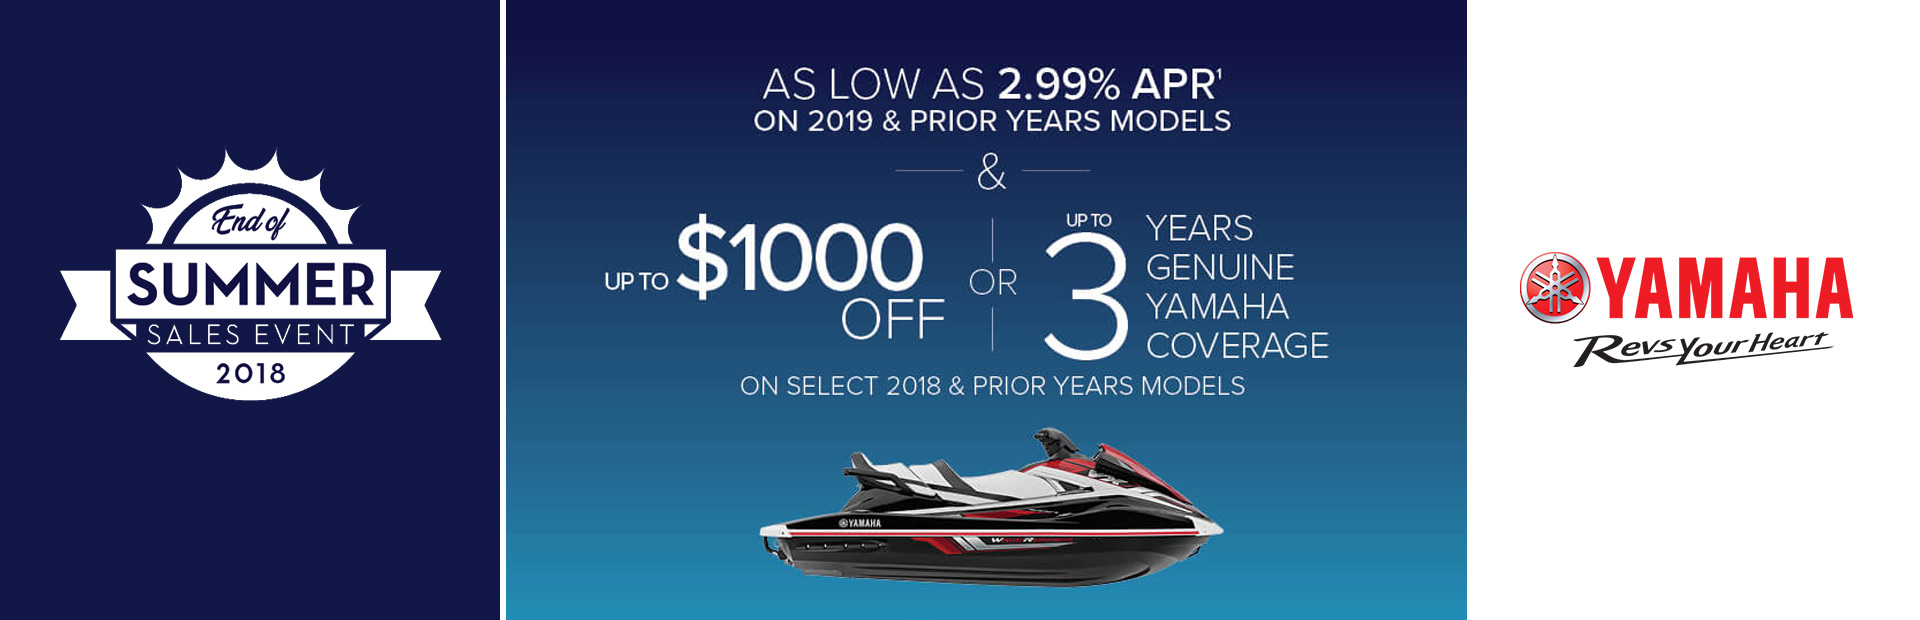 Yamaha: As Low As 2.99 % APR On 2019 & Prior Years Models